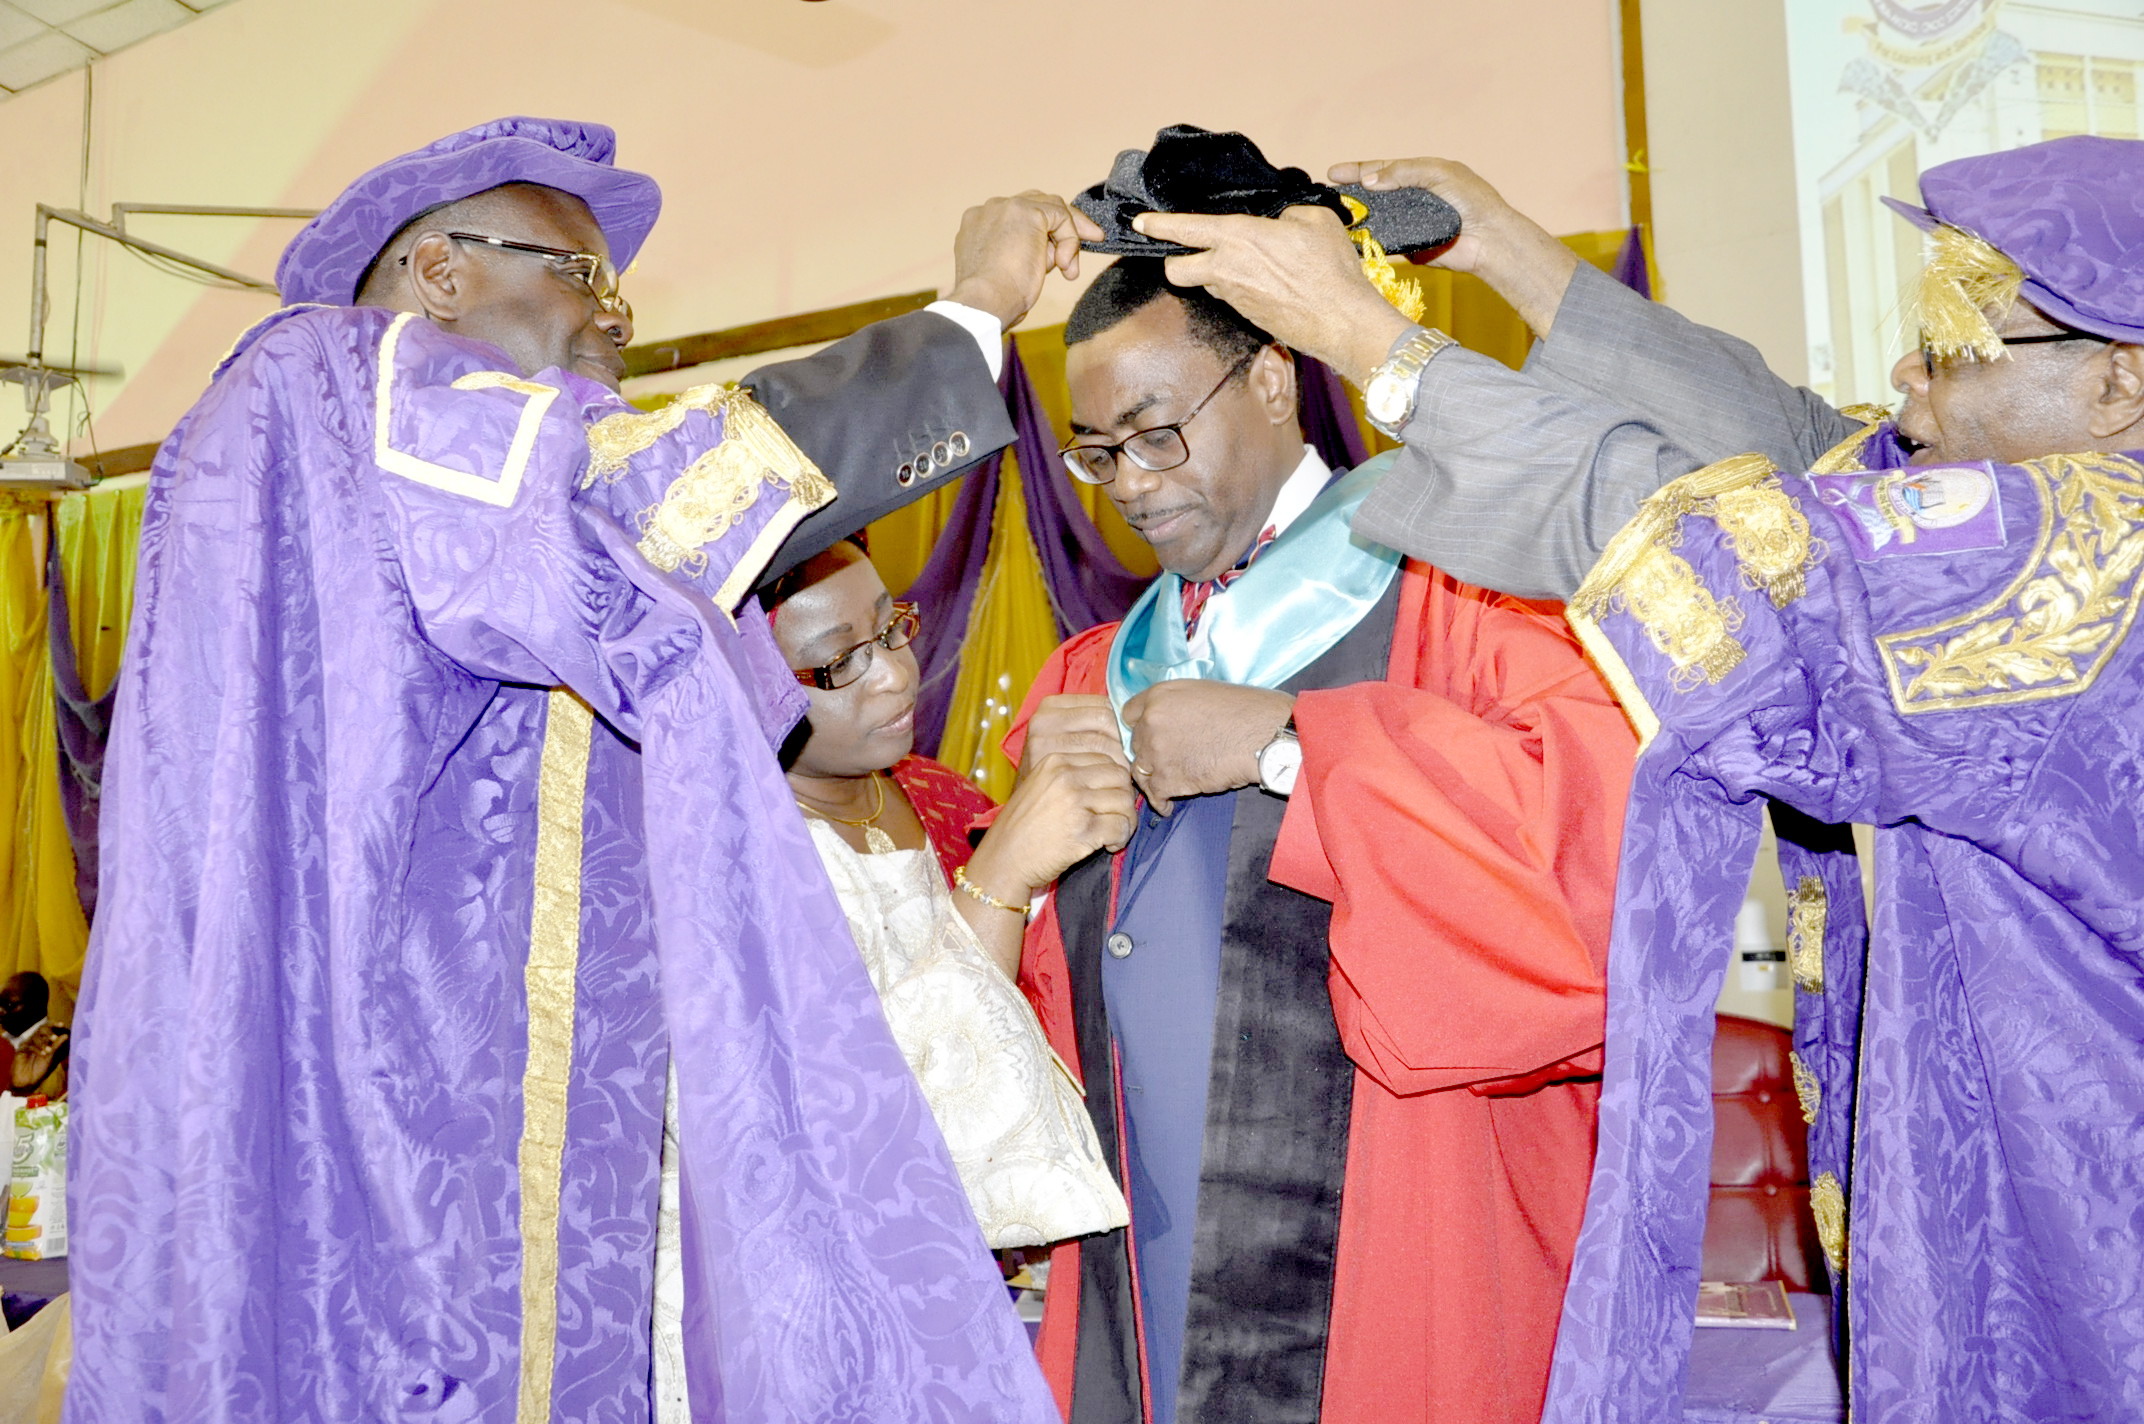 Dr Akinwumi Adesina receiving his cap and gown during the conferment ceremony.